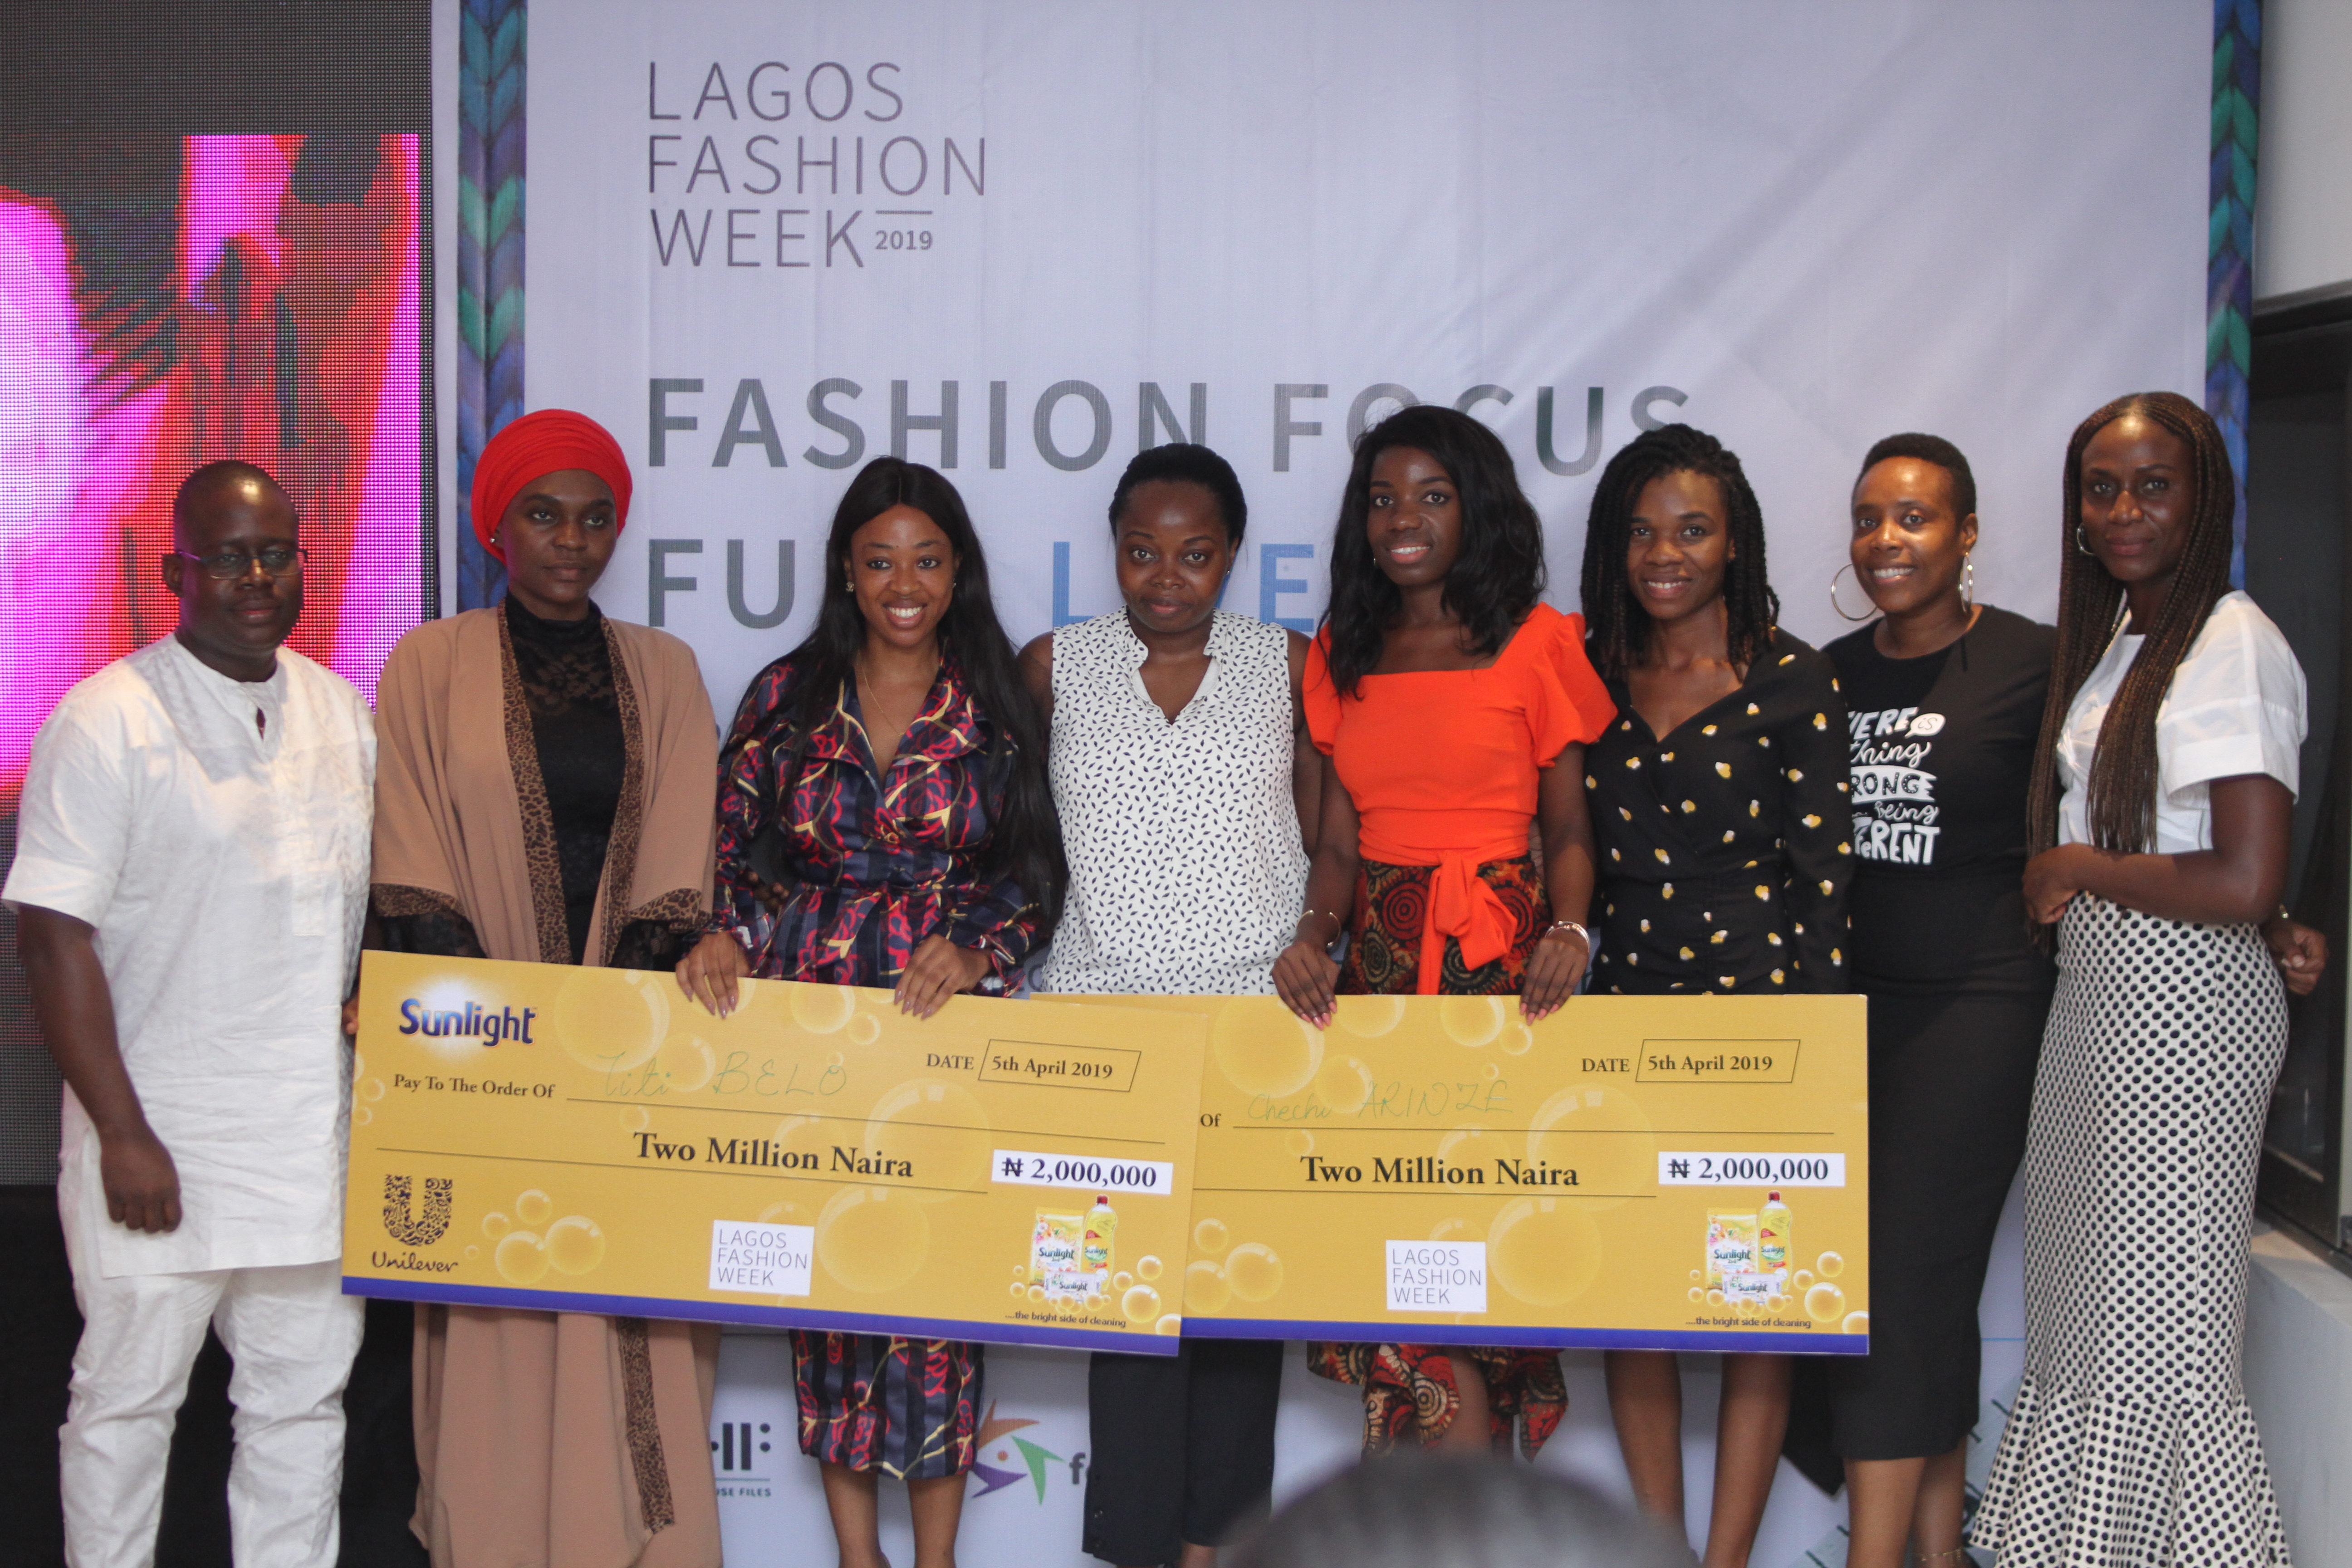 Sunlight Partners with Lagos Fashion Week 2019 & Supports Young Designers to Foster Women Empowerment